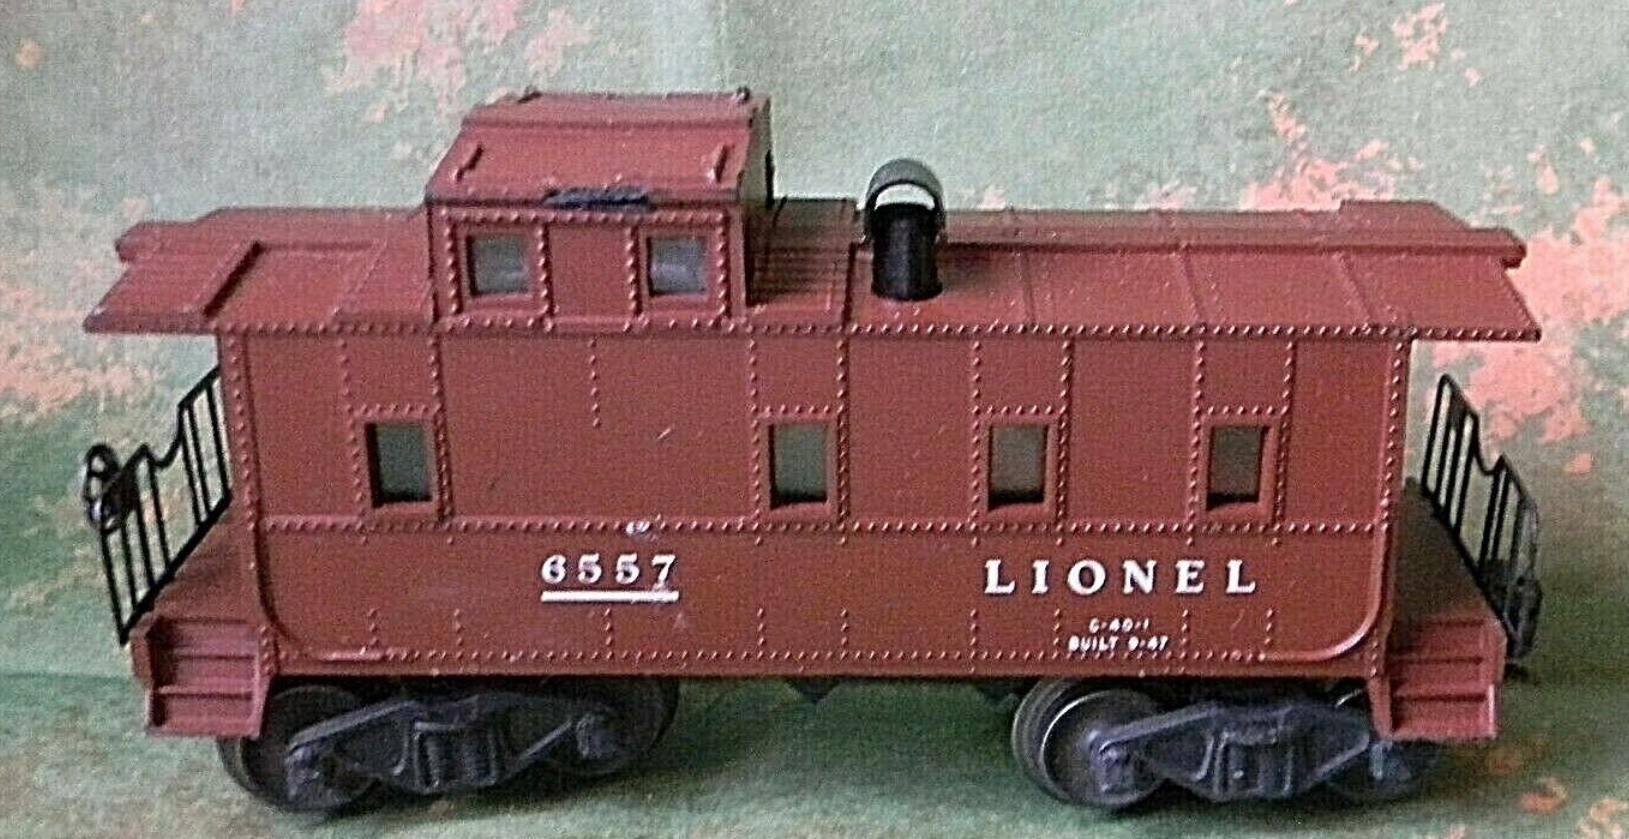 Lionel trains head down the track to SJ's Oct. 17 auction